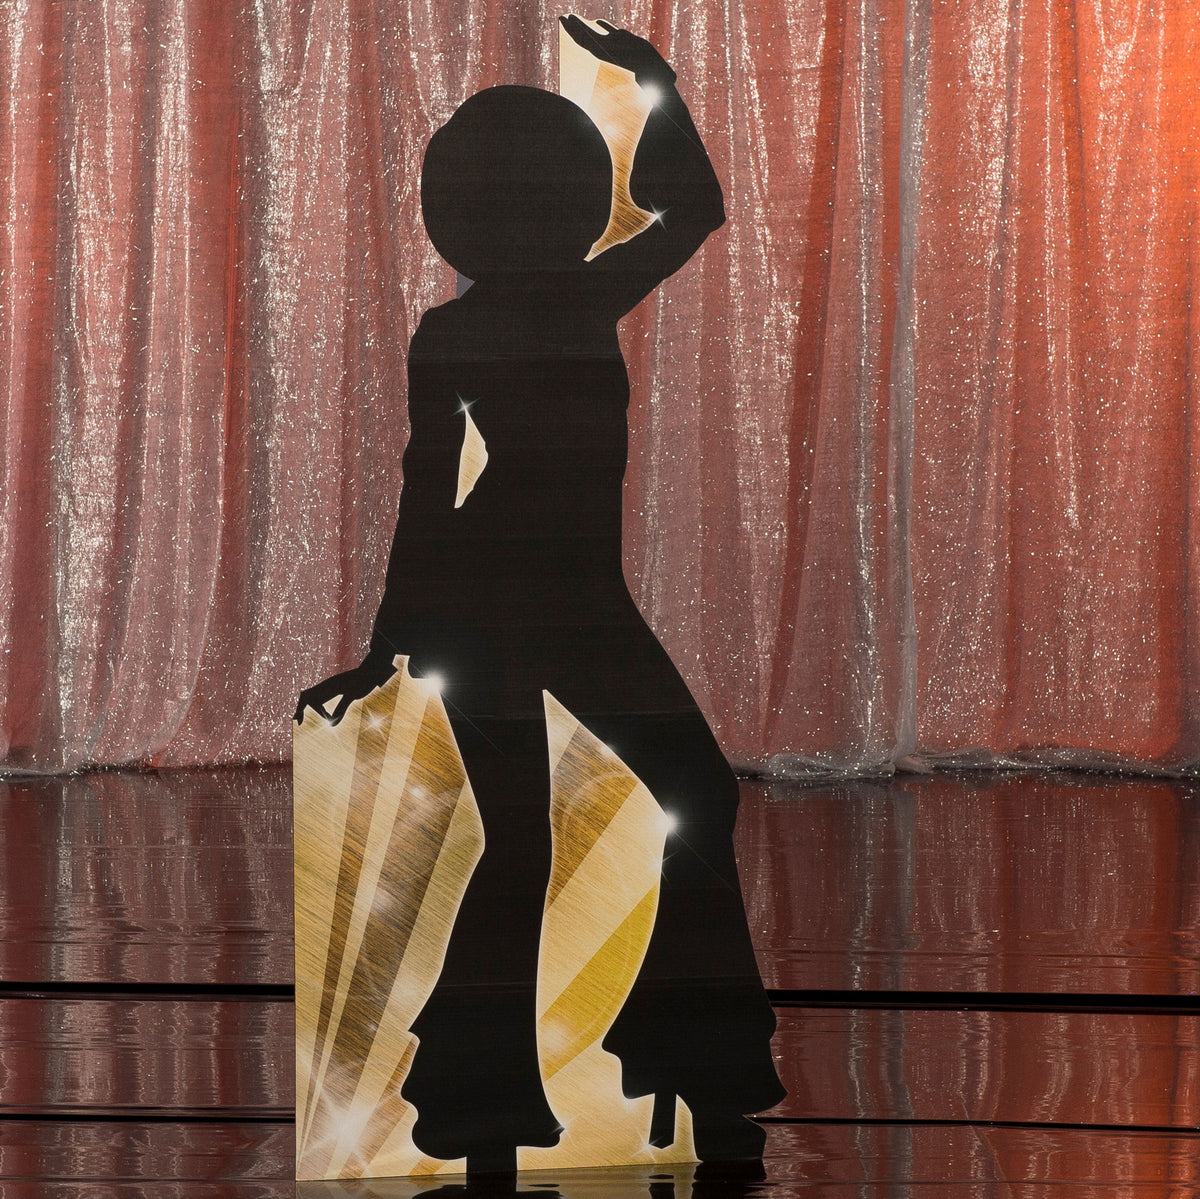 6 ft. 1 in. Studio 21 Silhouette Standee 2